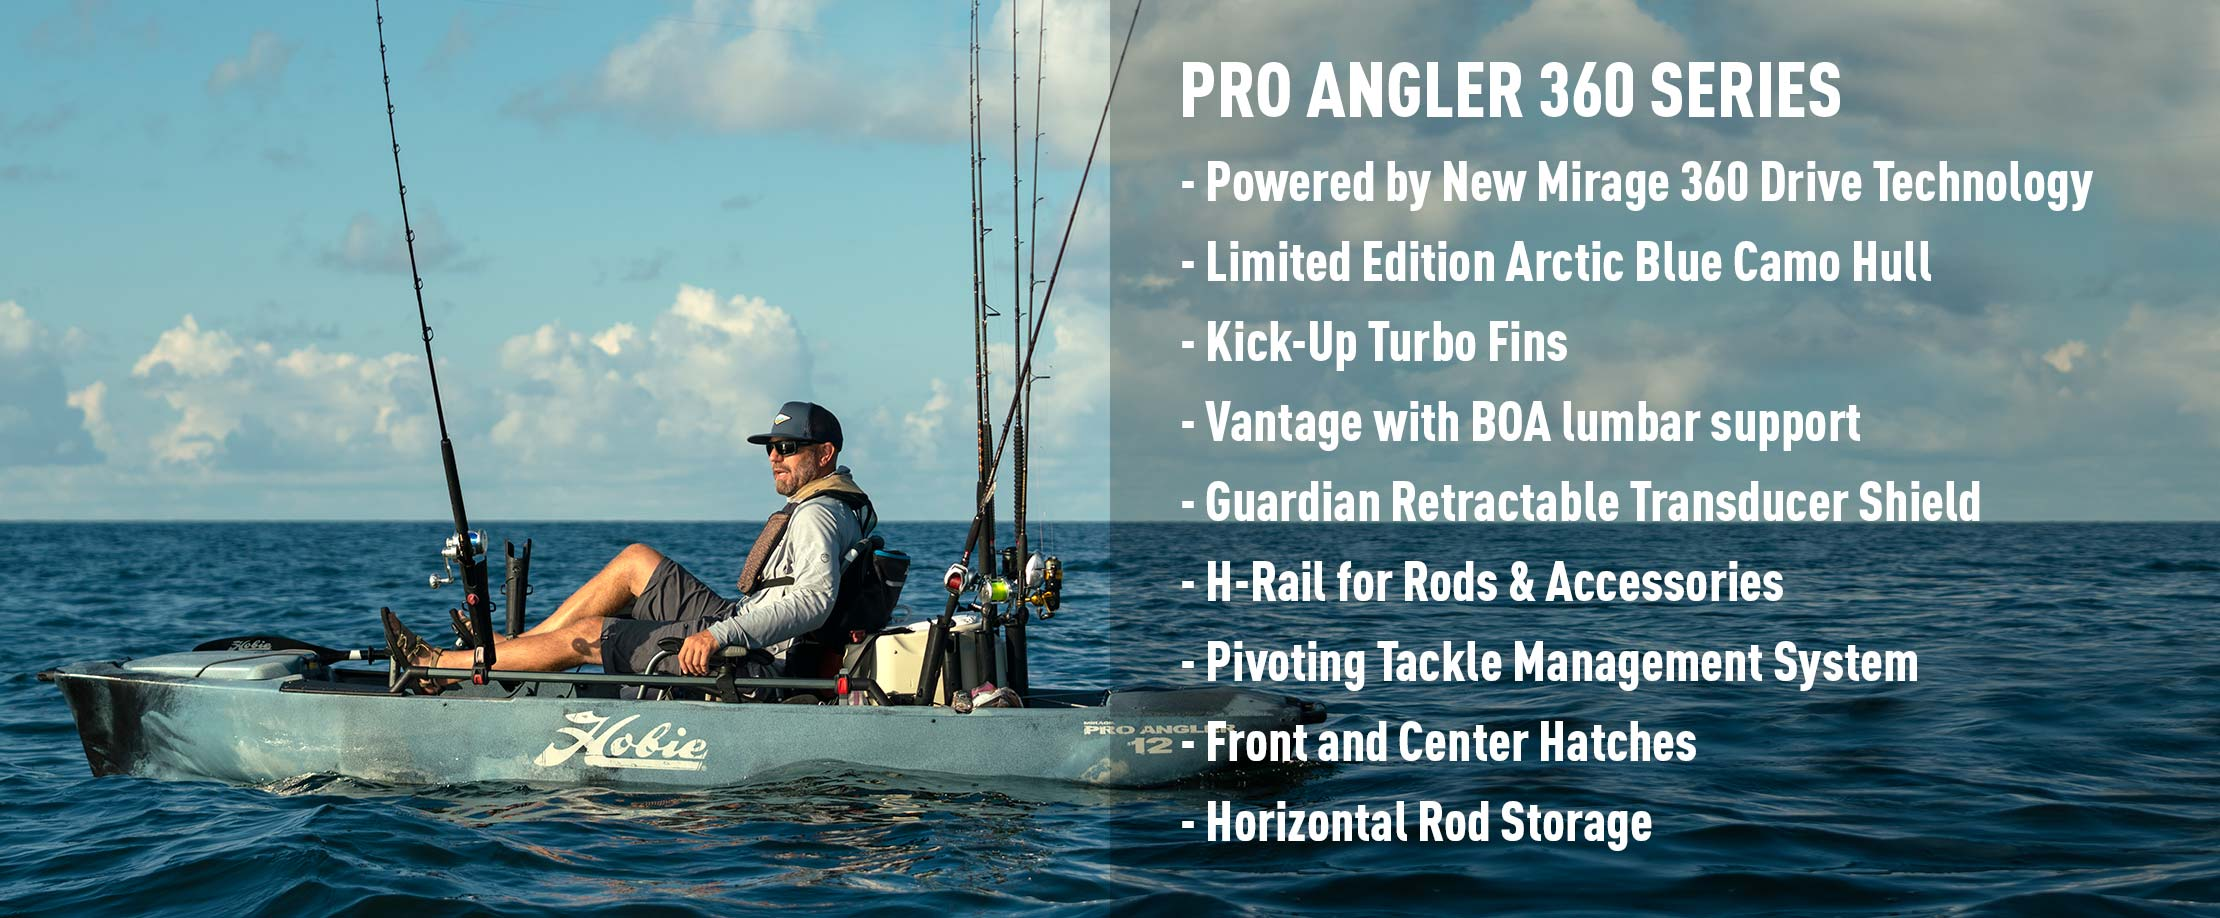 Mirage Pro Angler 12 with 360 Drive Technology Features